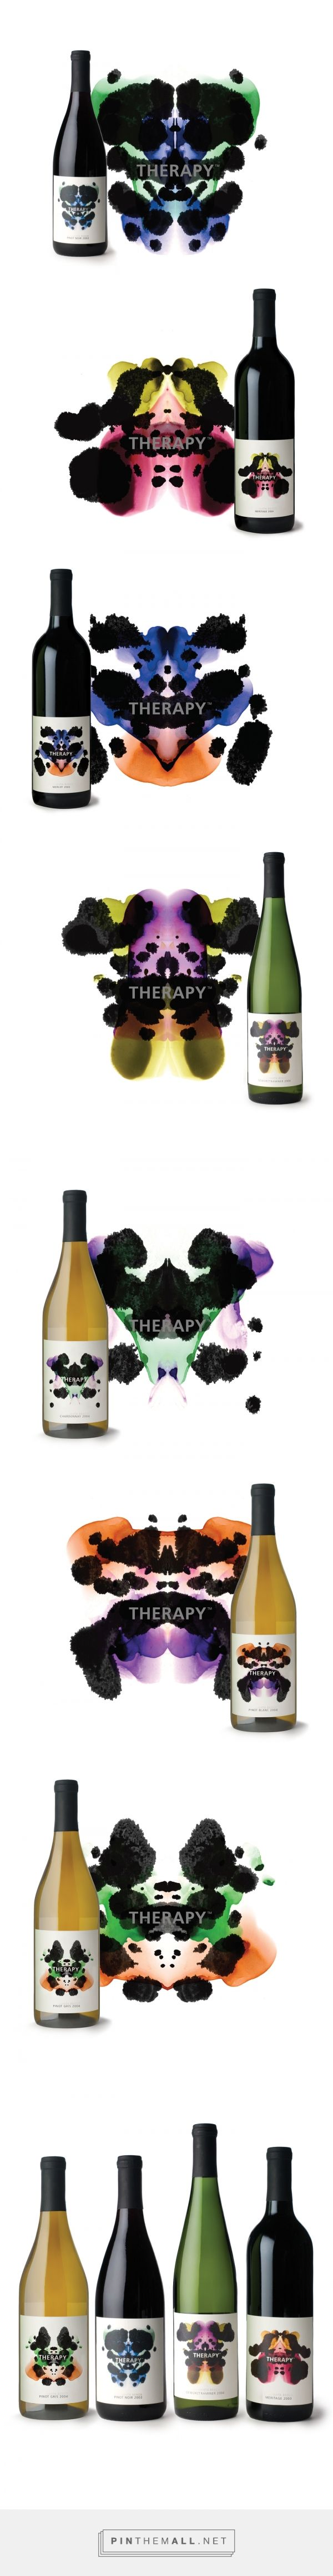 Art direction and packaging for award winning Therapy Vineyards on Behance by Branever Design Vancouver, BC curated by Packaging Diva PD. Features a distinctive inkblot design, based on the famous Rorschach Inkblot Test, back labels ask the consumer what they see in the wine, rather than telling them what they are about to taste.